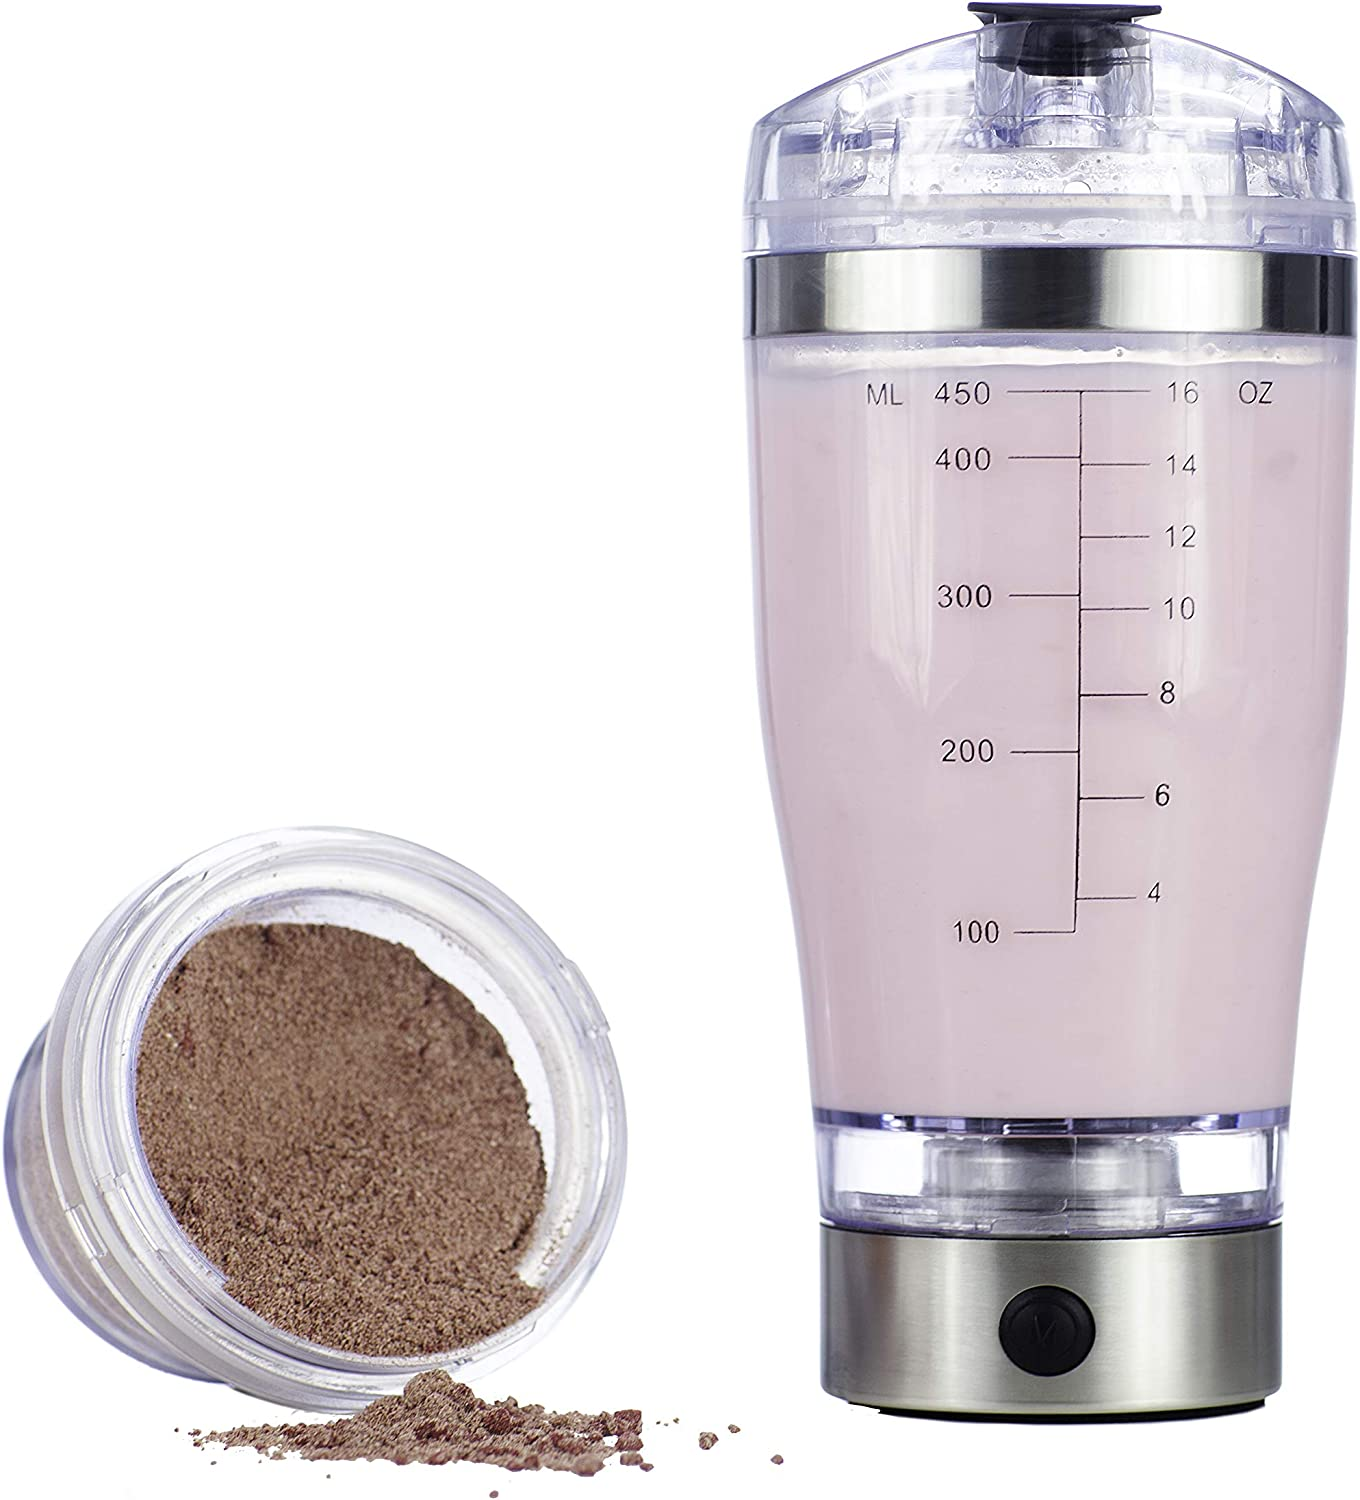 Vortex Select Portable Electric Mixer Shaker Blender Bottle for Protein Powders, Shakes, Eggs, Pre-Workout Shakes, Post-Workout Shakes, and More with Ingredients Cup and USB 16 oz.